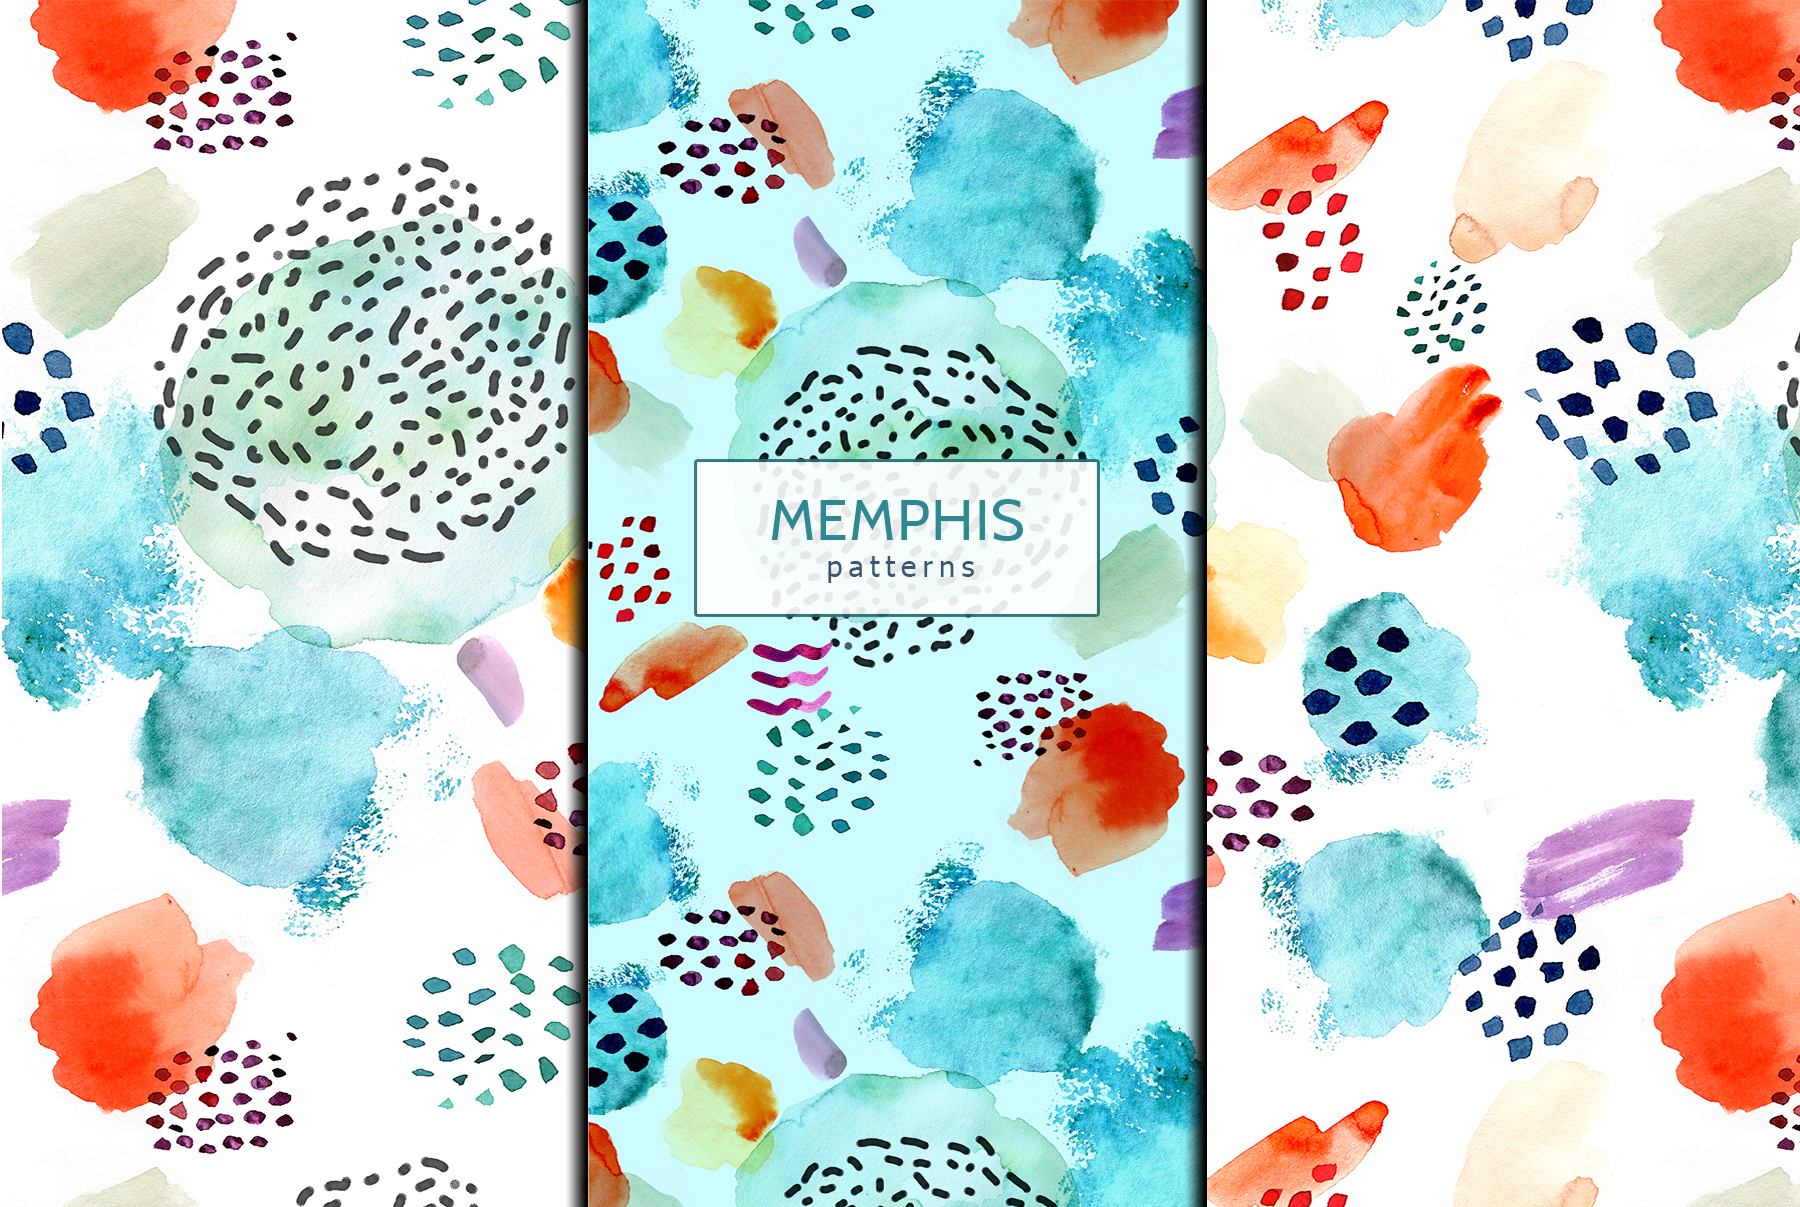 Watercolor memphis patterns & shapes example image 6